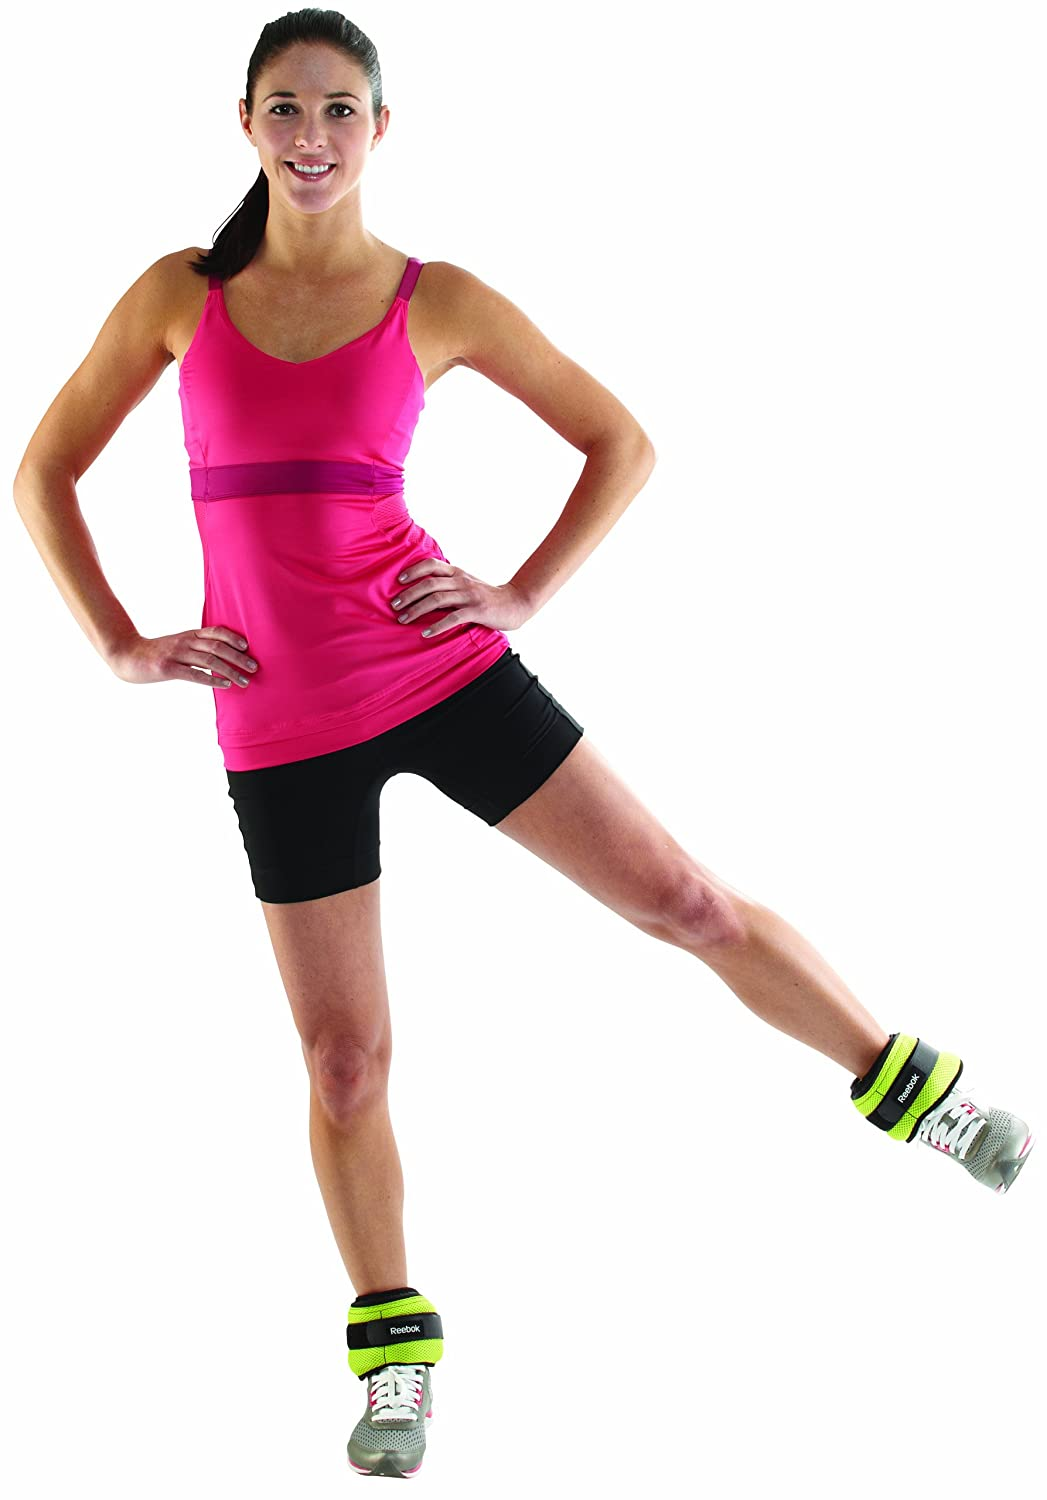 7 Benefits of ankle weights